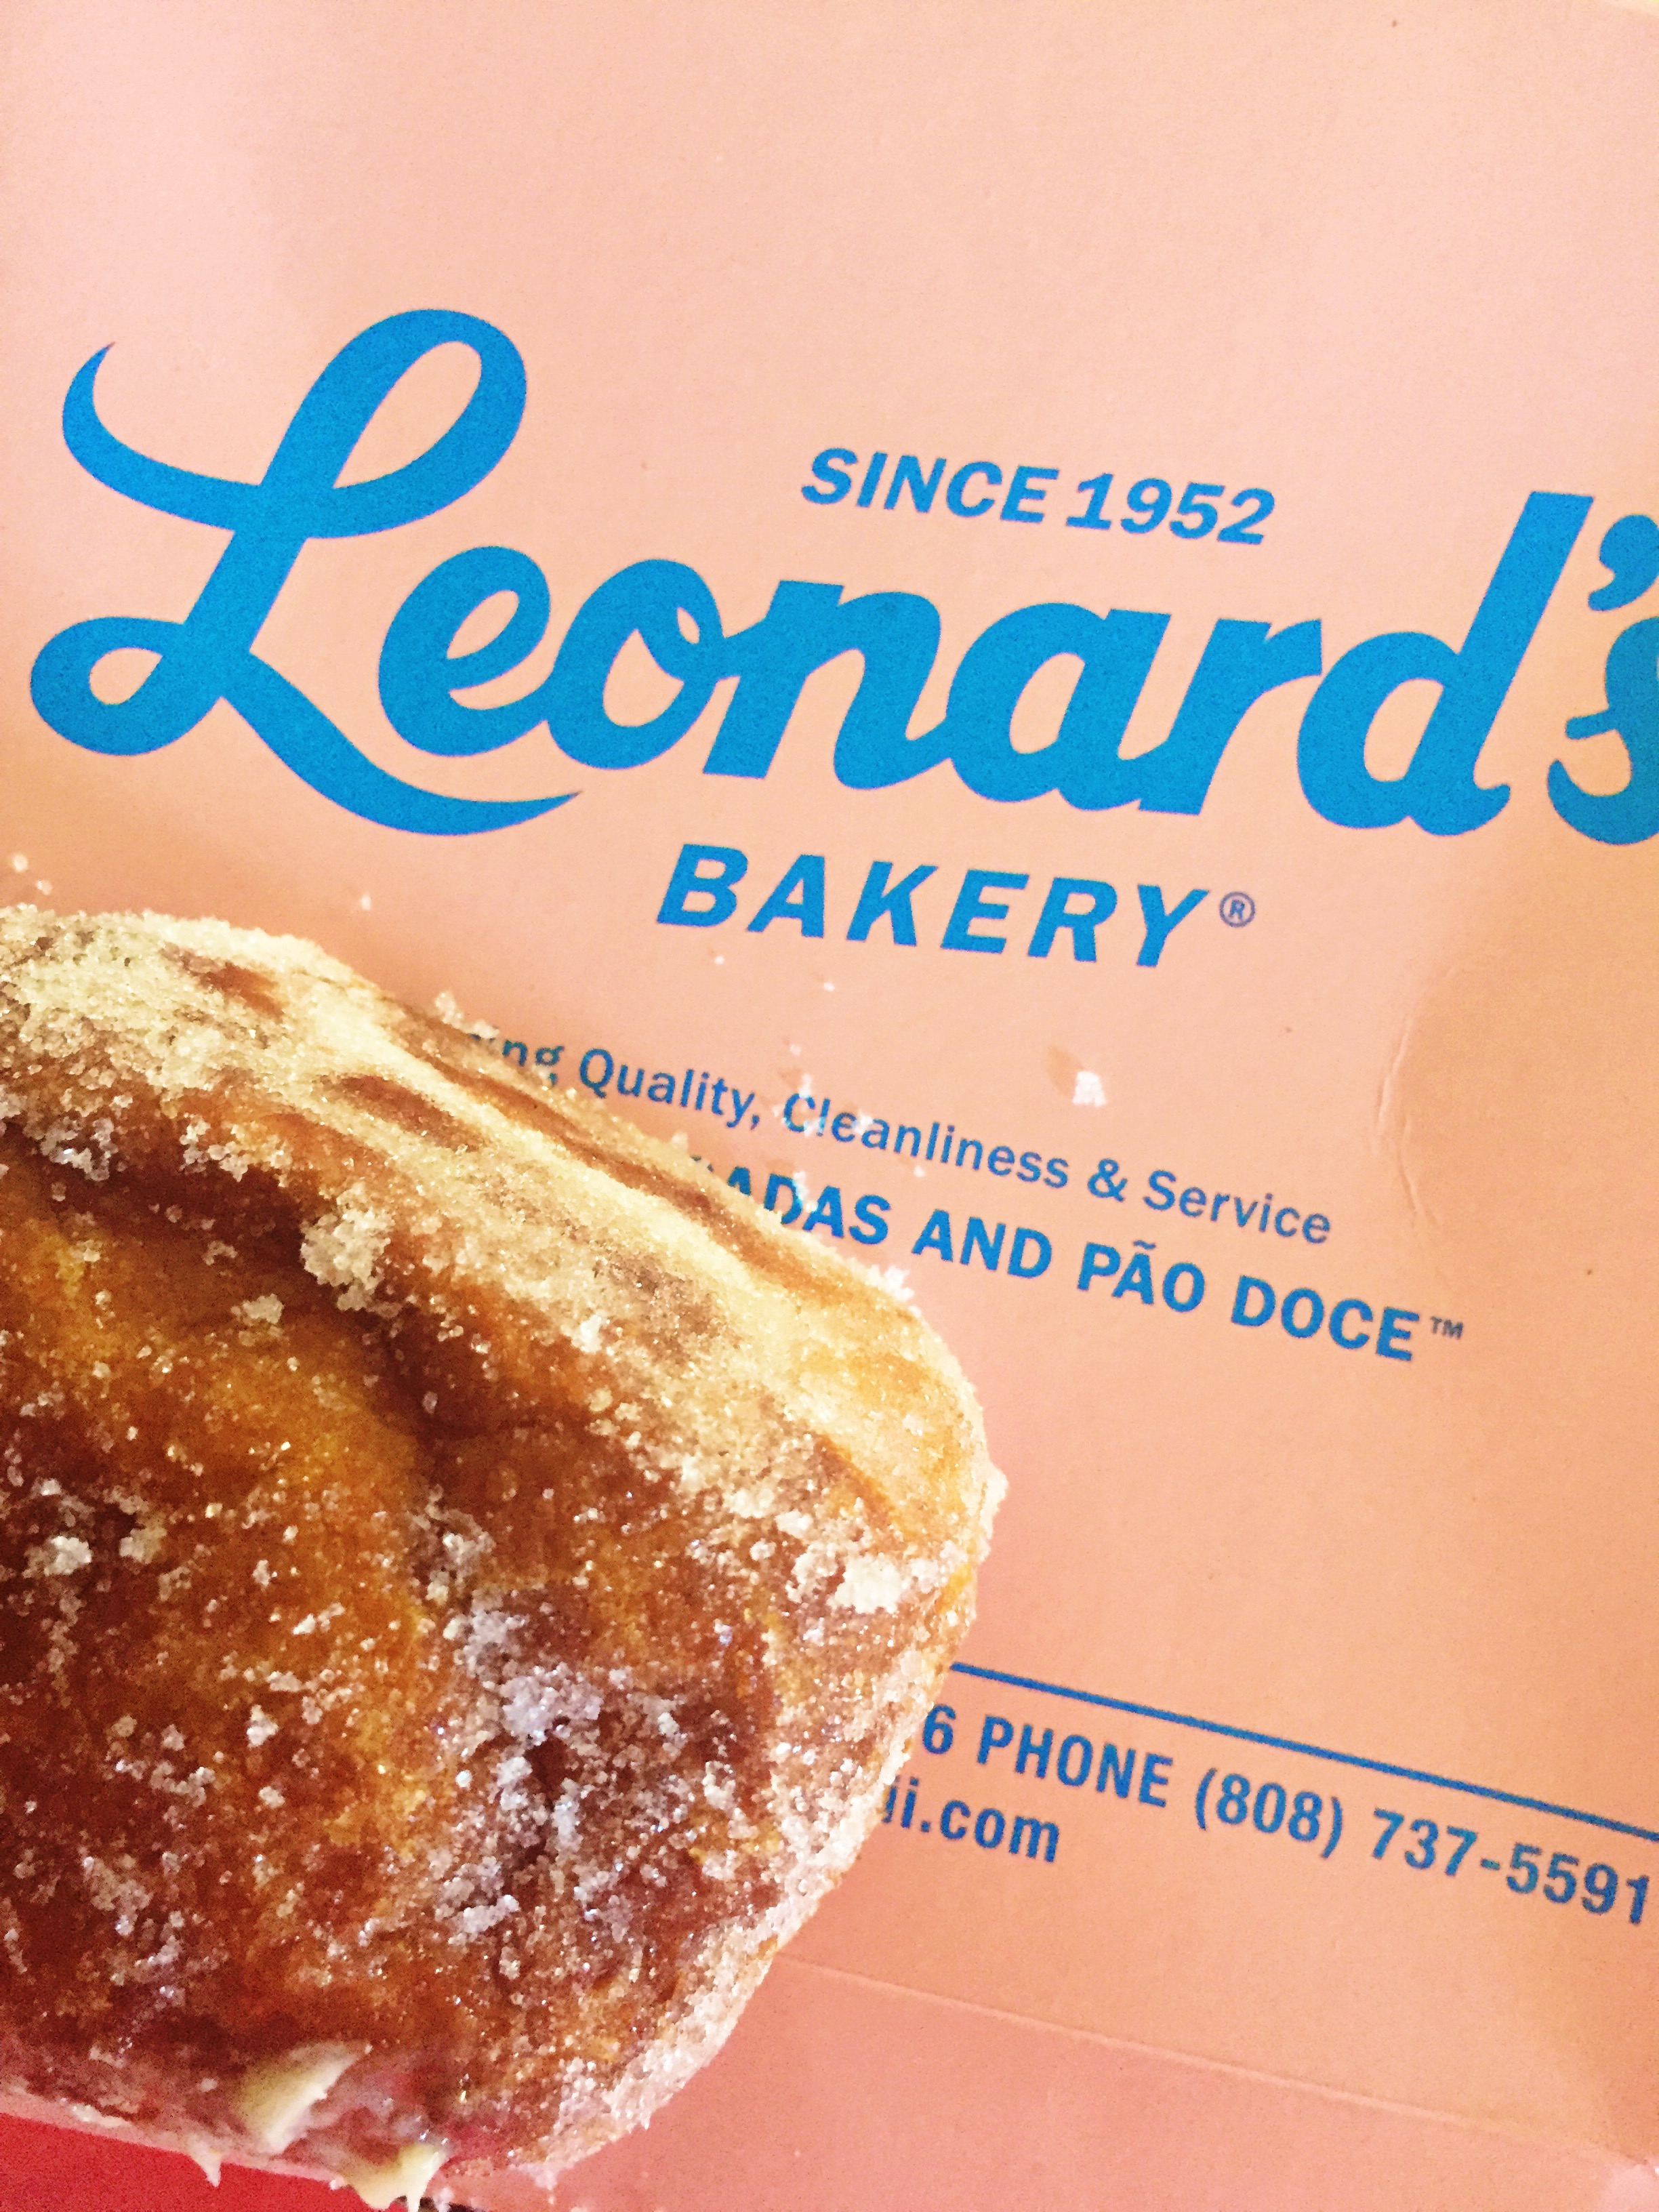 Leonard's Bakery - Honolulu, Hawaii - Malasadas